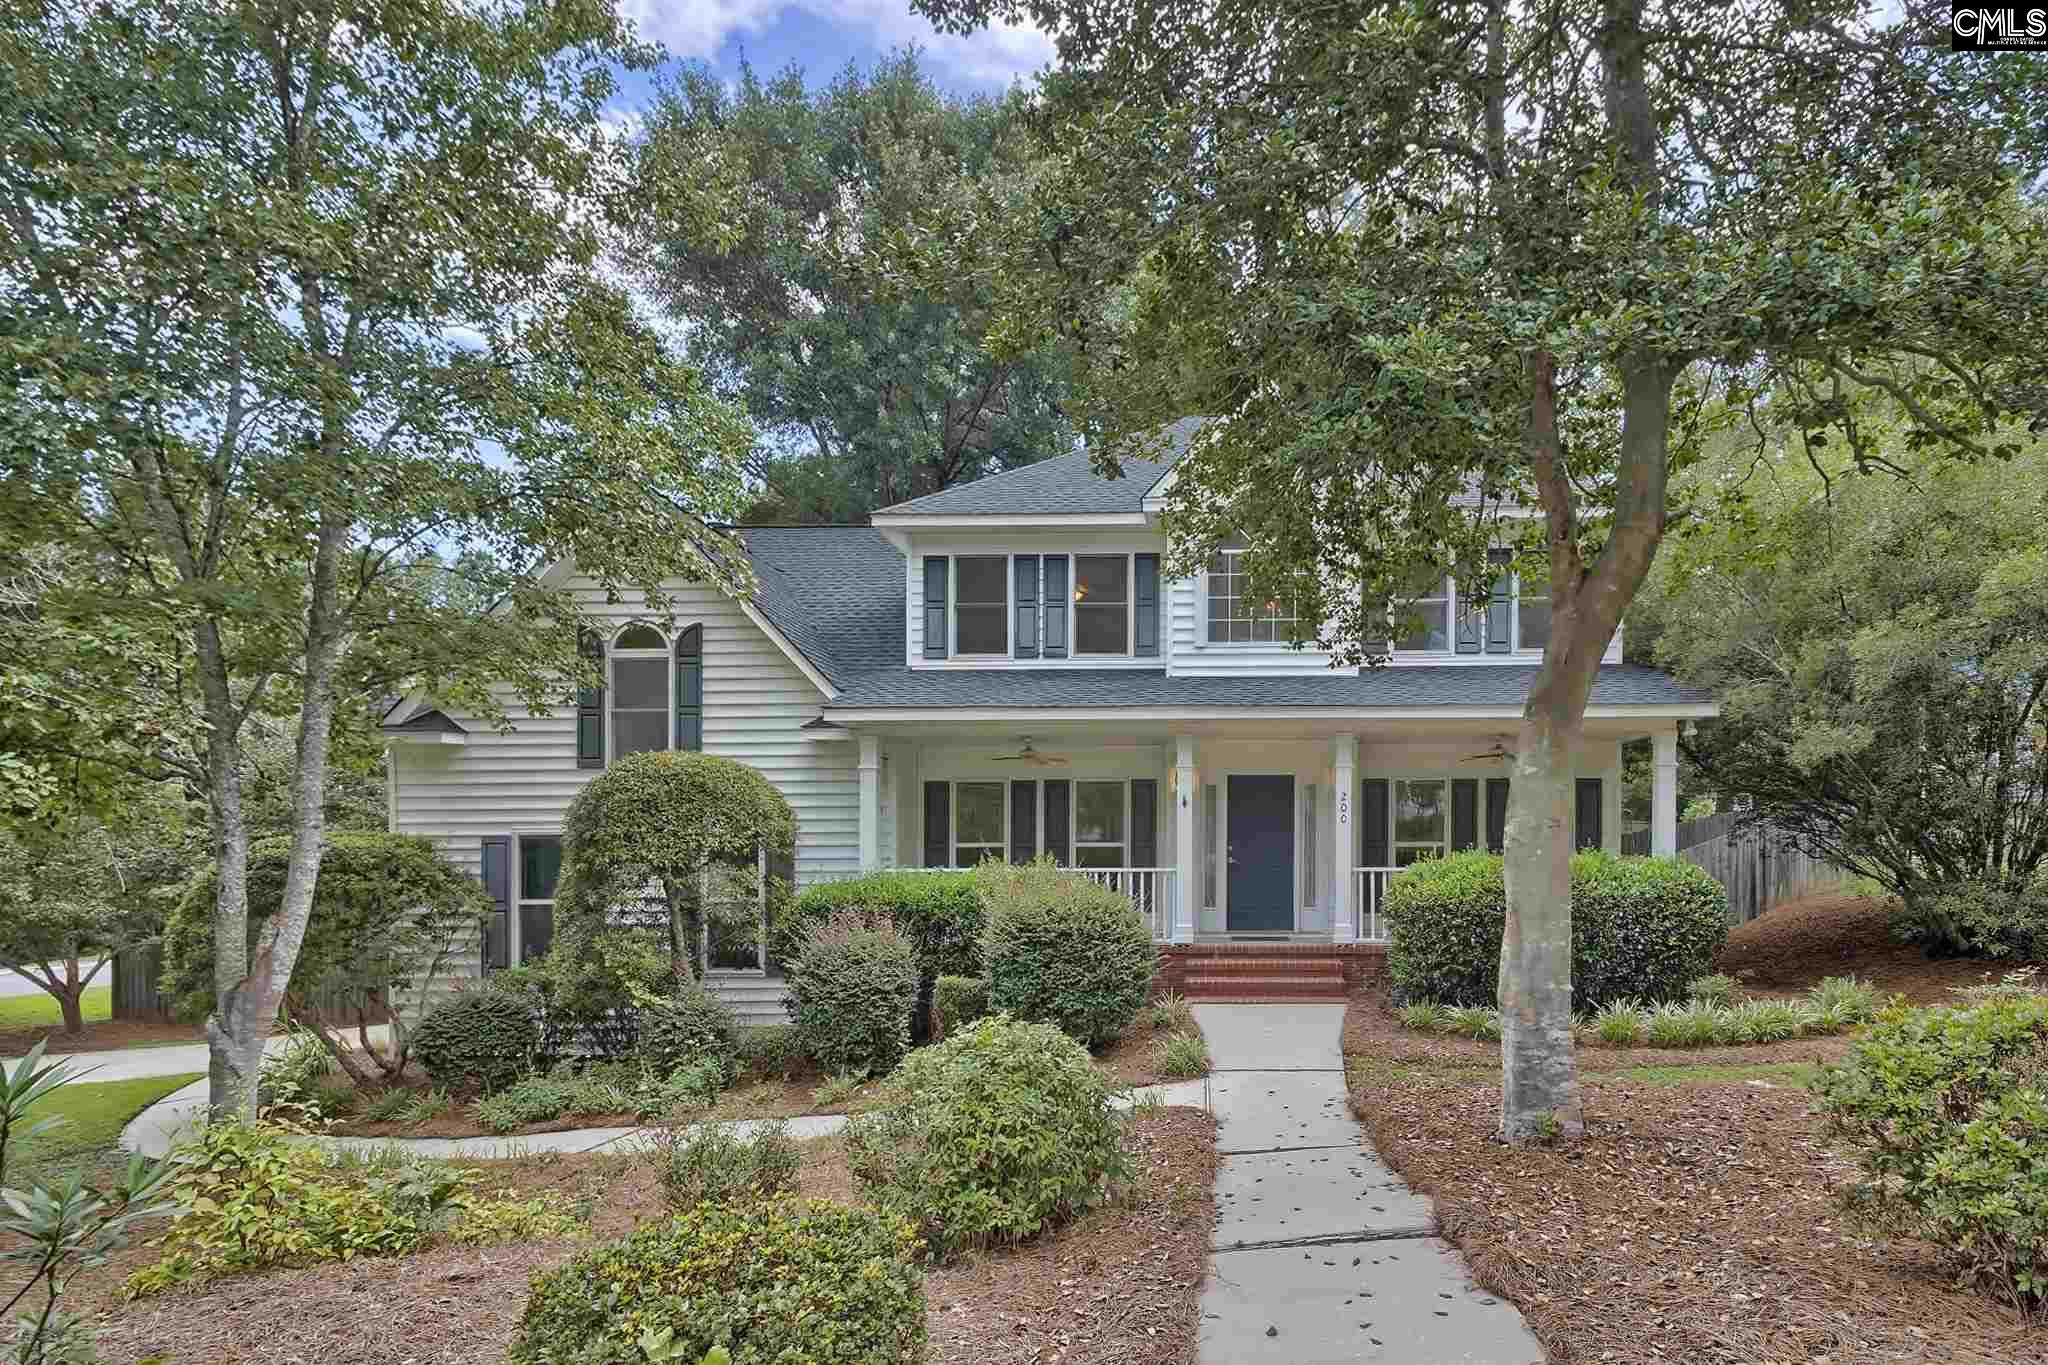 200 Carola Lexington, SC 29072-3922